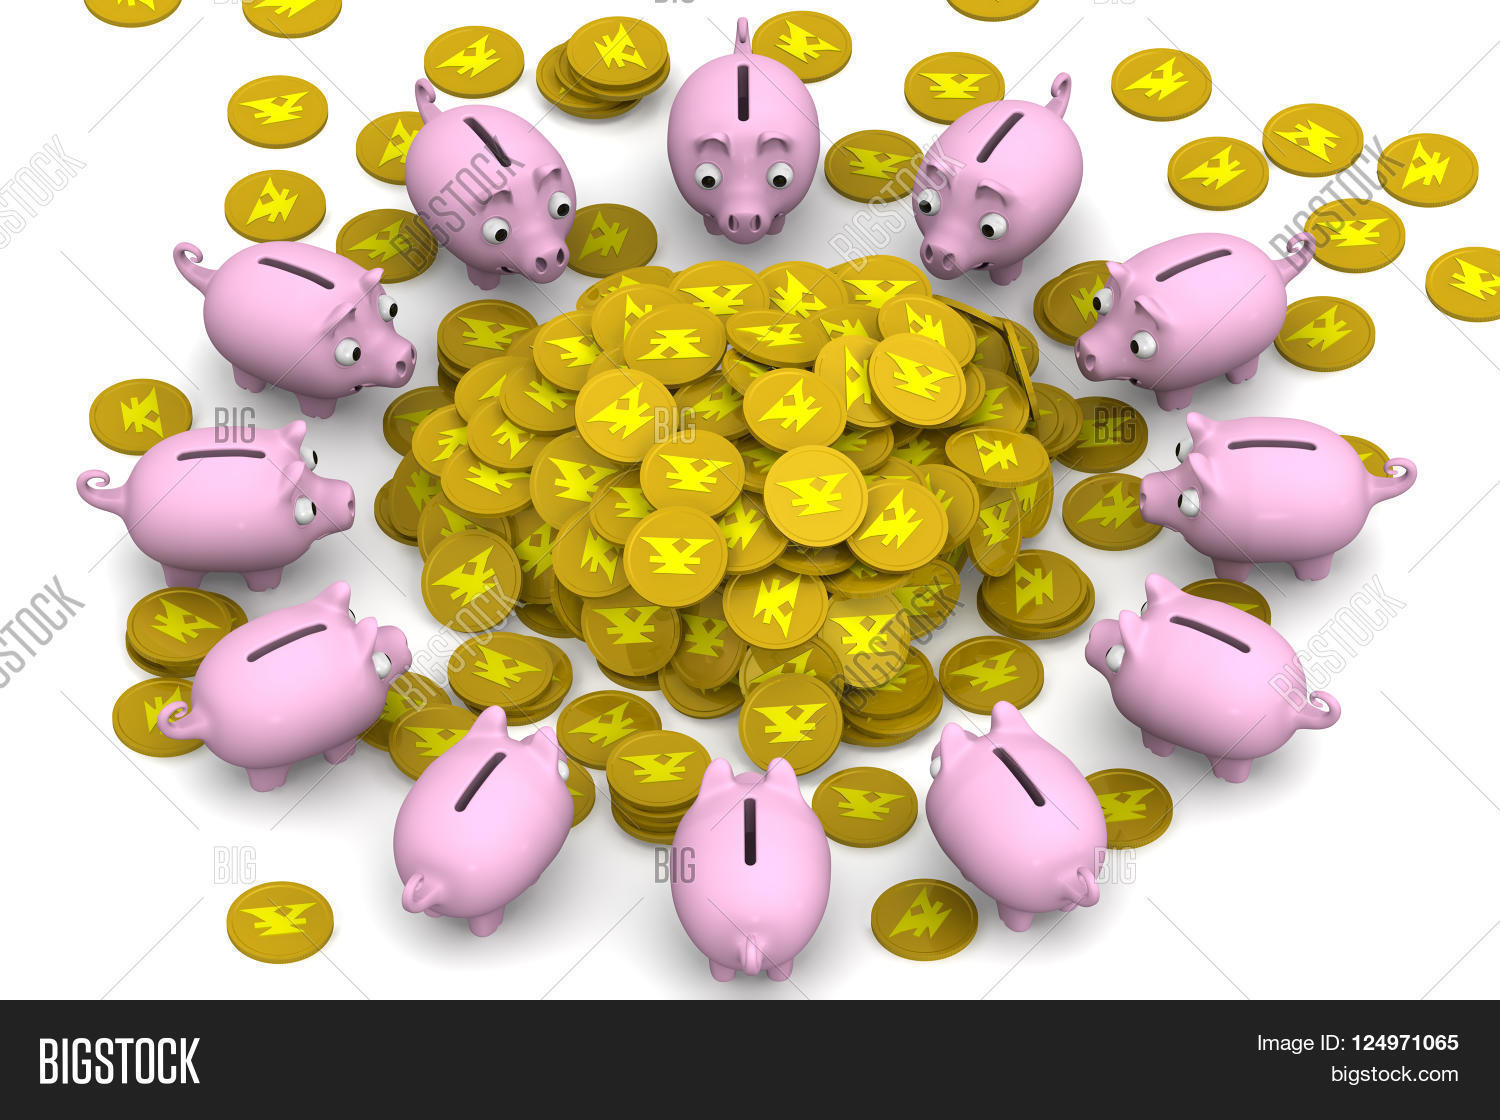 Pink Piggy Banks Surrounded The Pile Of Gold Coins With Symbol